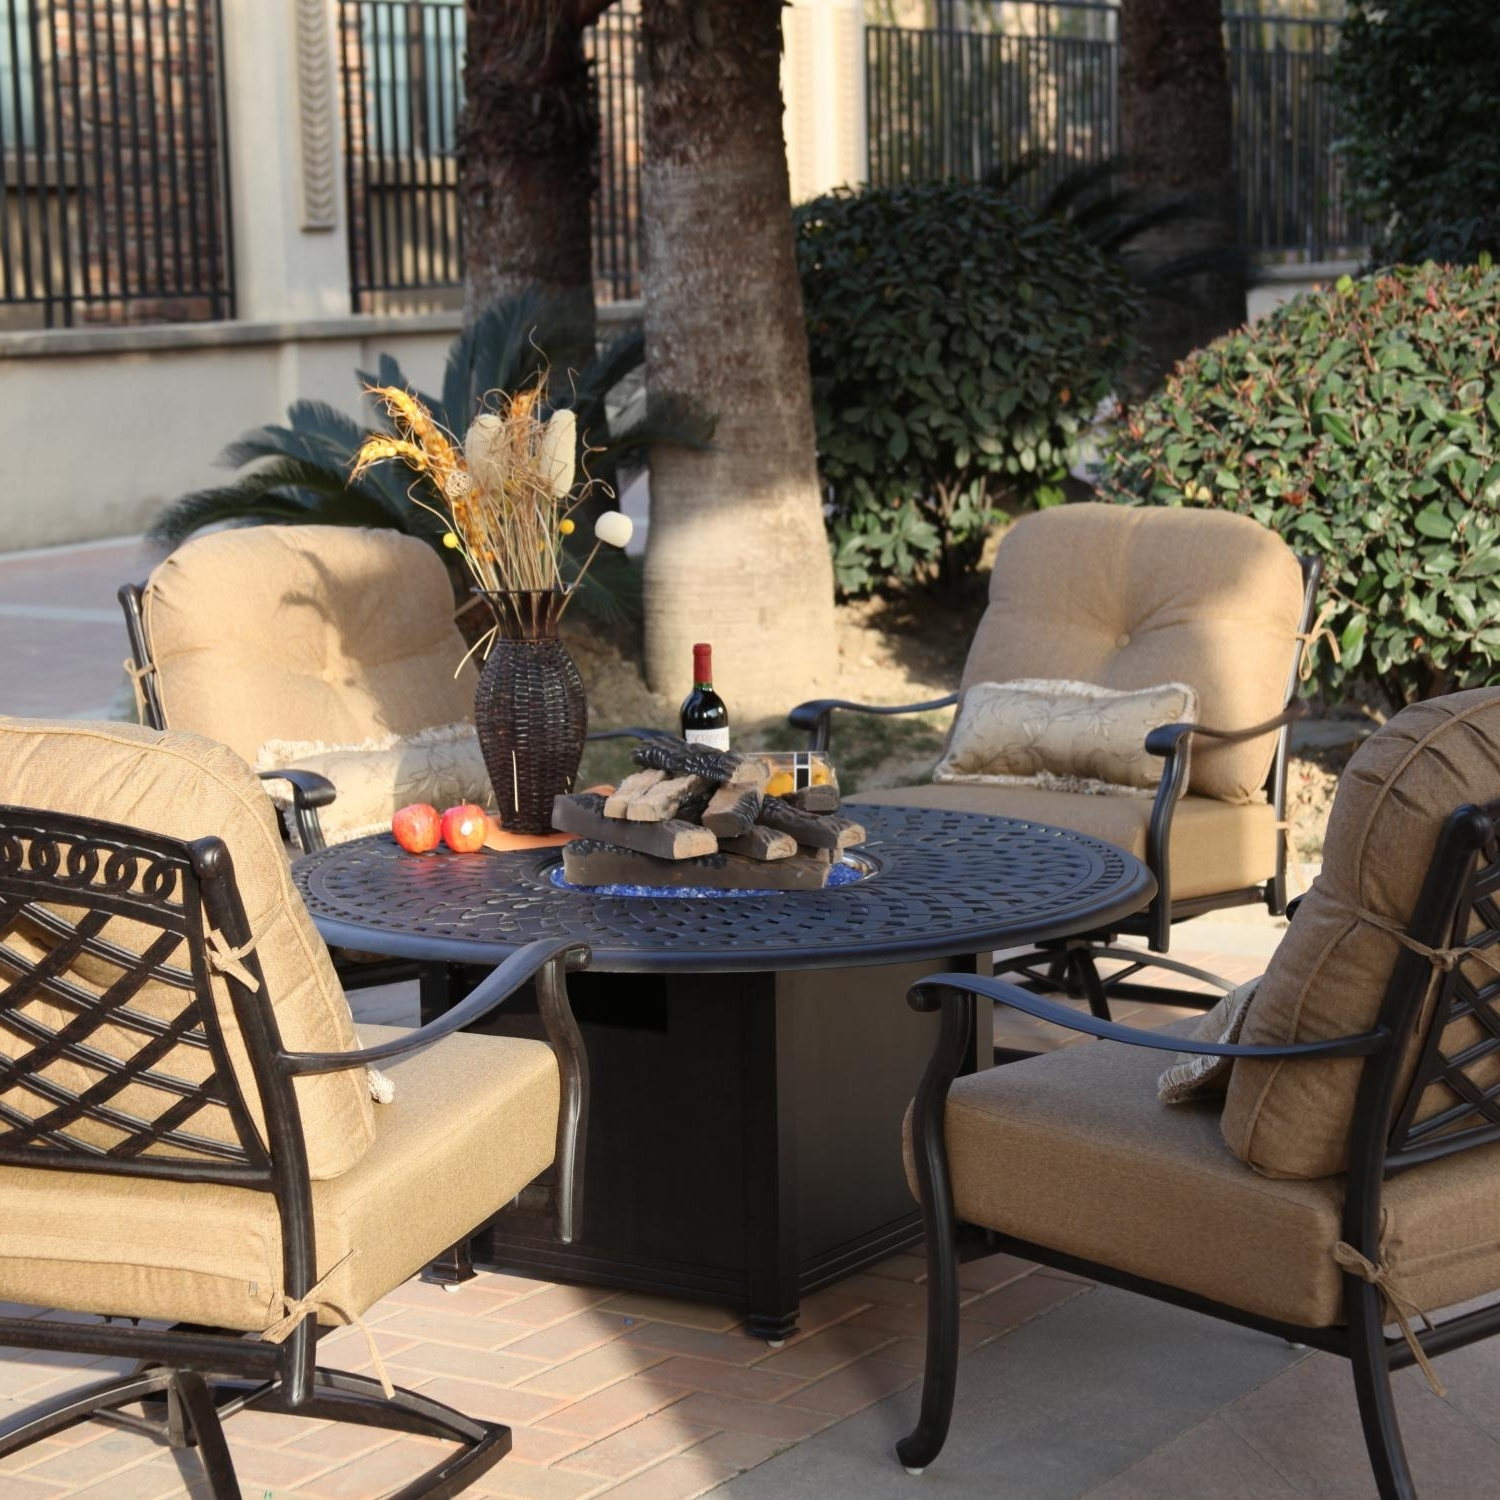 5 Piece Patio Conversation Sets Regarding Well Liked Darlee Sedona 5 Piece Aluminum Patio Fire Pit Seating Set (View 18 of 20)